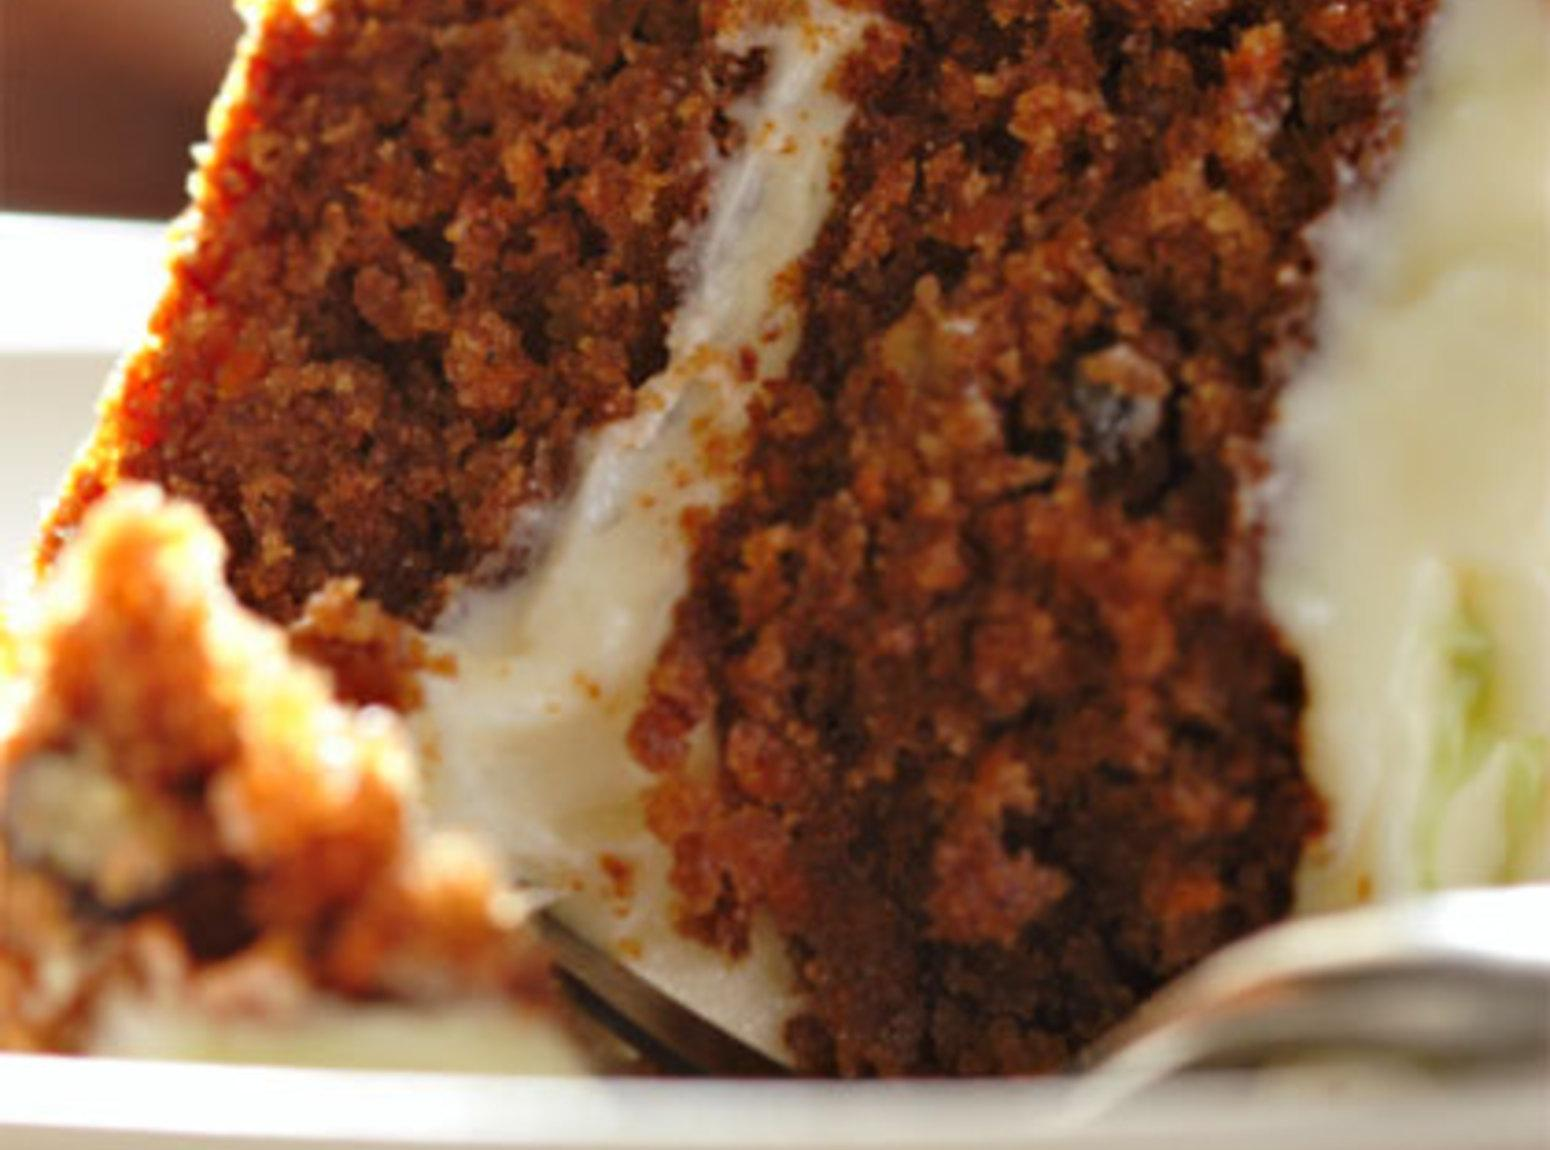 Weight Watchers Carrot Cake Recipe With Pineapple